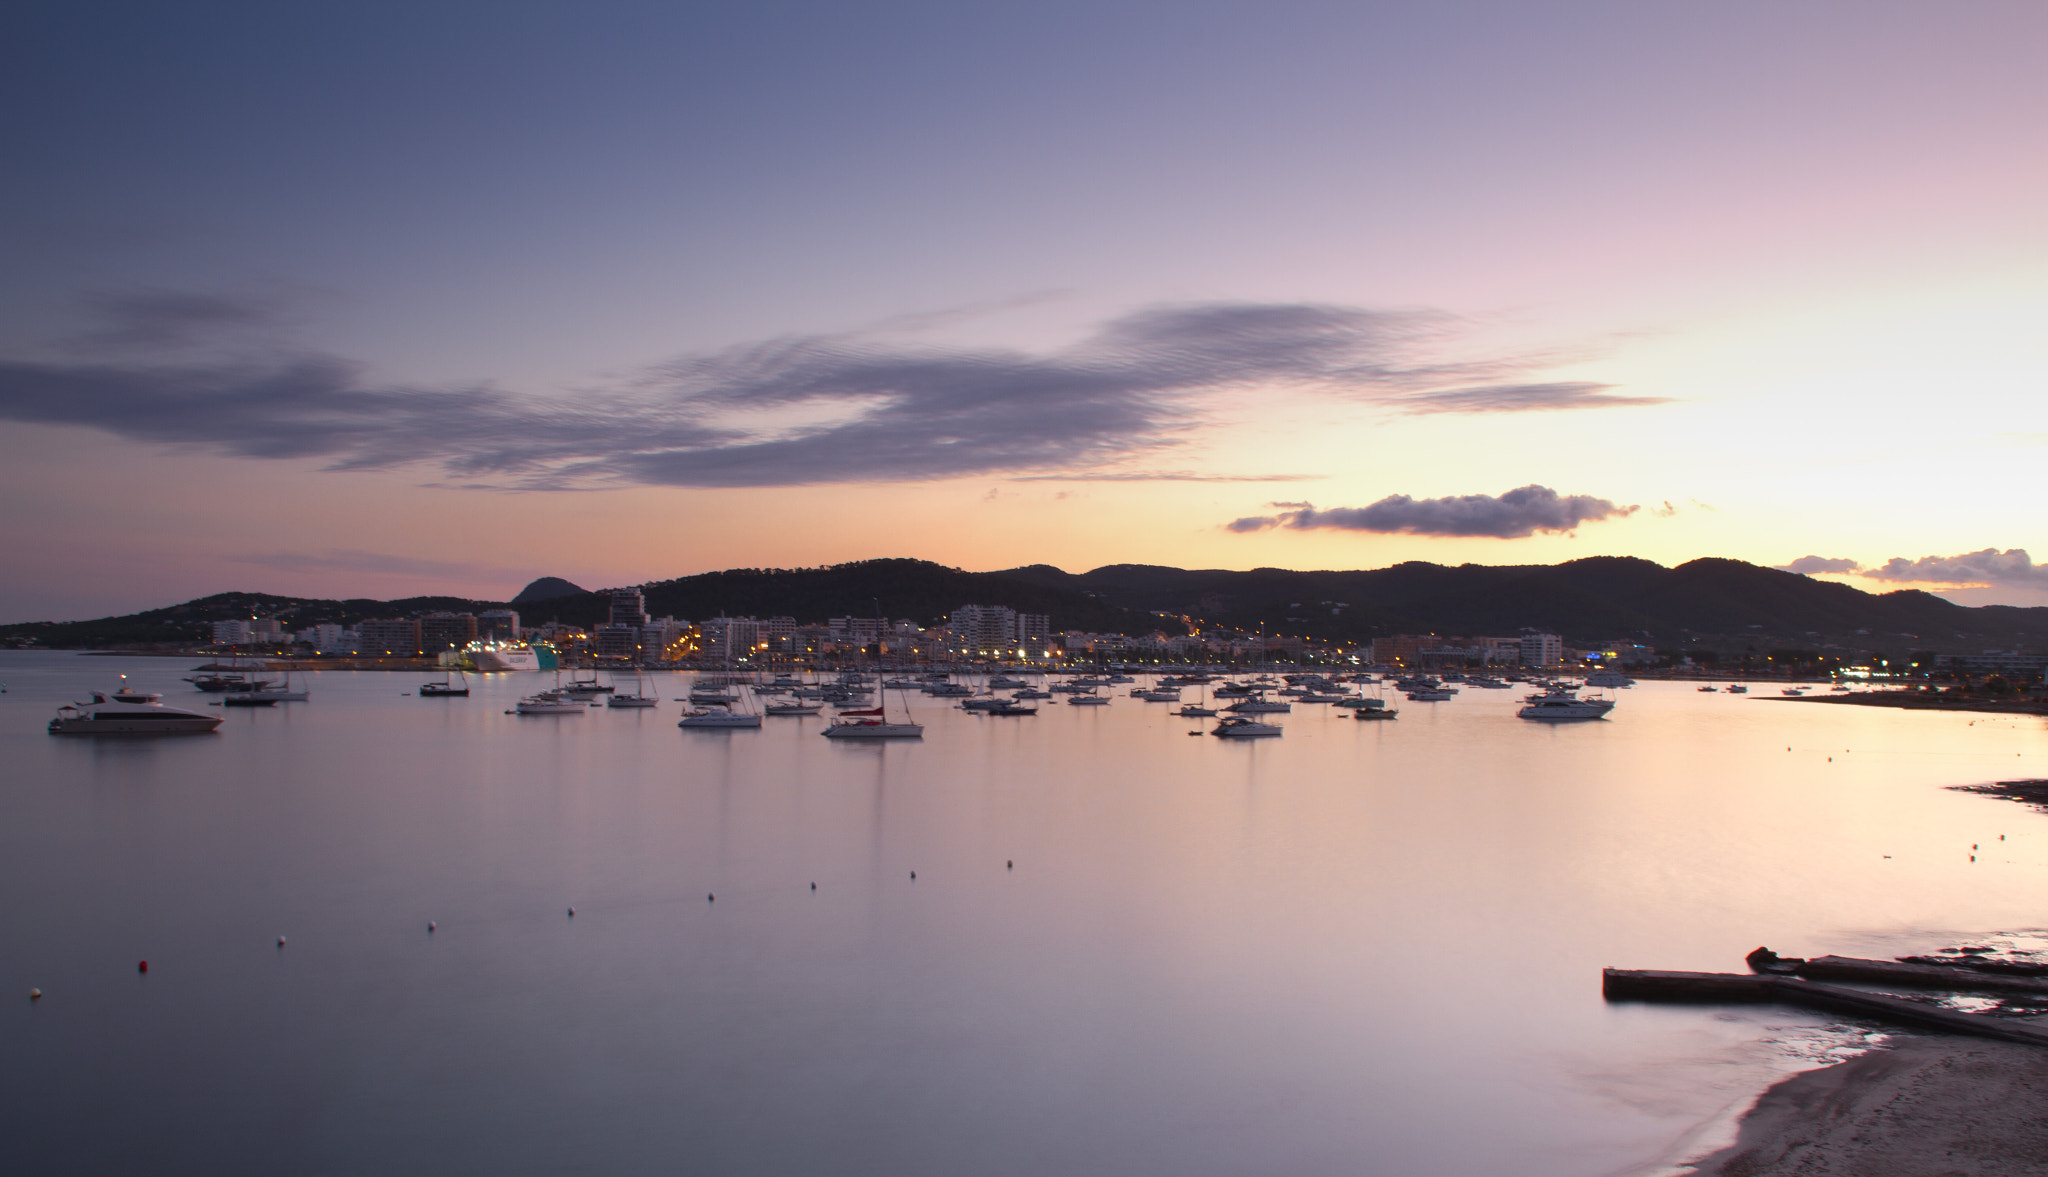 Photograph Ibiza 6am by Alan Shelley on 500px